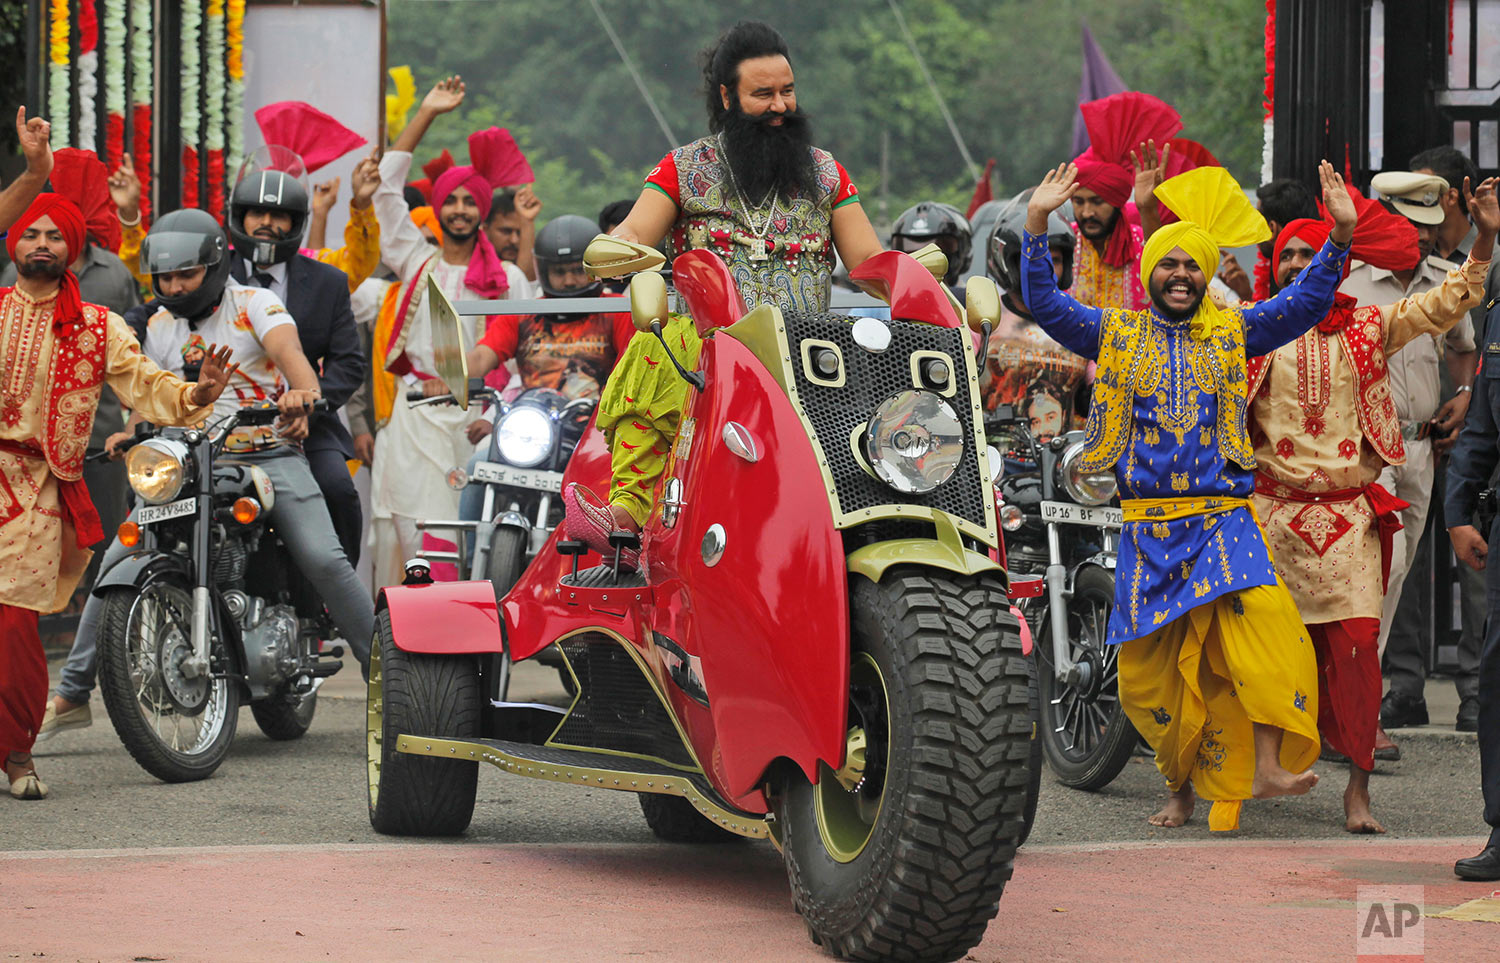 """In this Wednesday, Oct. 5, file 2016 photo, Indian spiritual guru, who calls himself Saint Dr. Gurmeet Ram Rahim Singh Ji Insan, arrives for a press conference ahead of the release of his new film """"MSG, The Warrior Lion Heart,"""" in New Delhi, India. Several cities in north India were under a security lock down Thursday ahead of a verdict in a rape trial involving the controversial and hugely popular spiritual leader. (AP Photo/Tsering Topgyal)"""